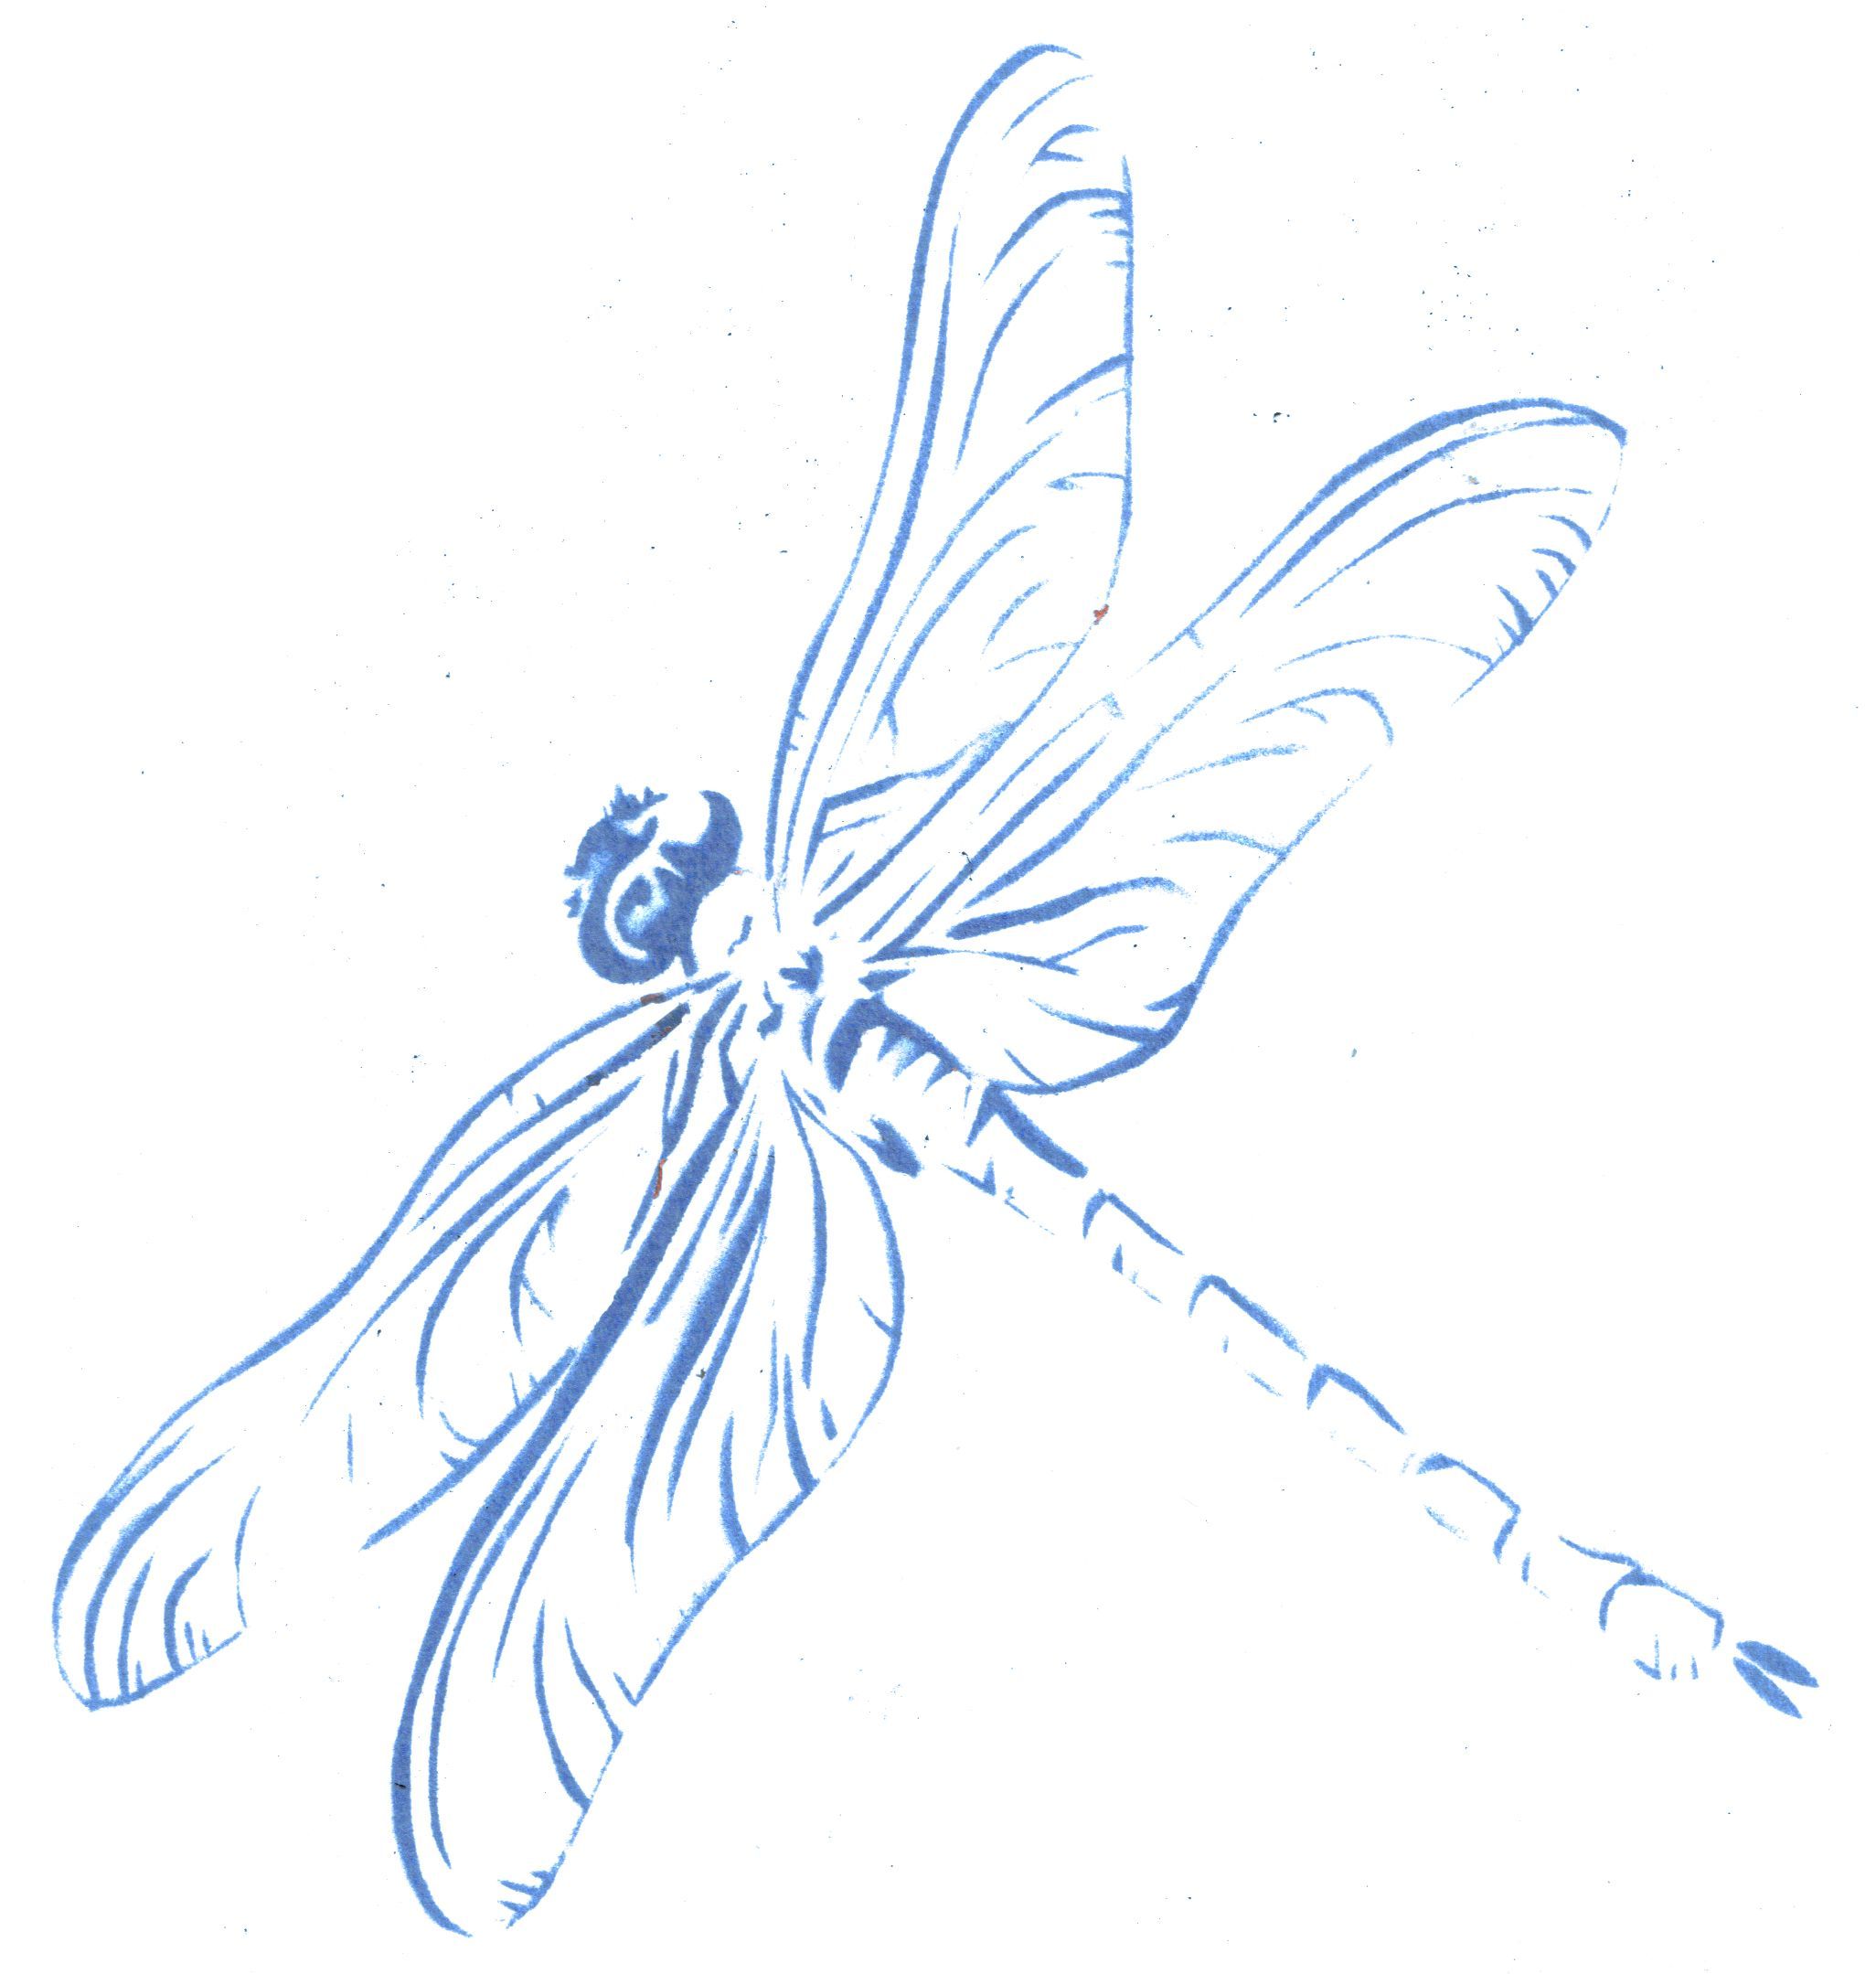 dragonfly_stencil_by_freakstatic.jpg (2052×2159) (With